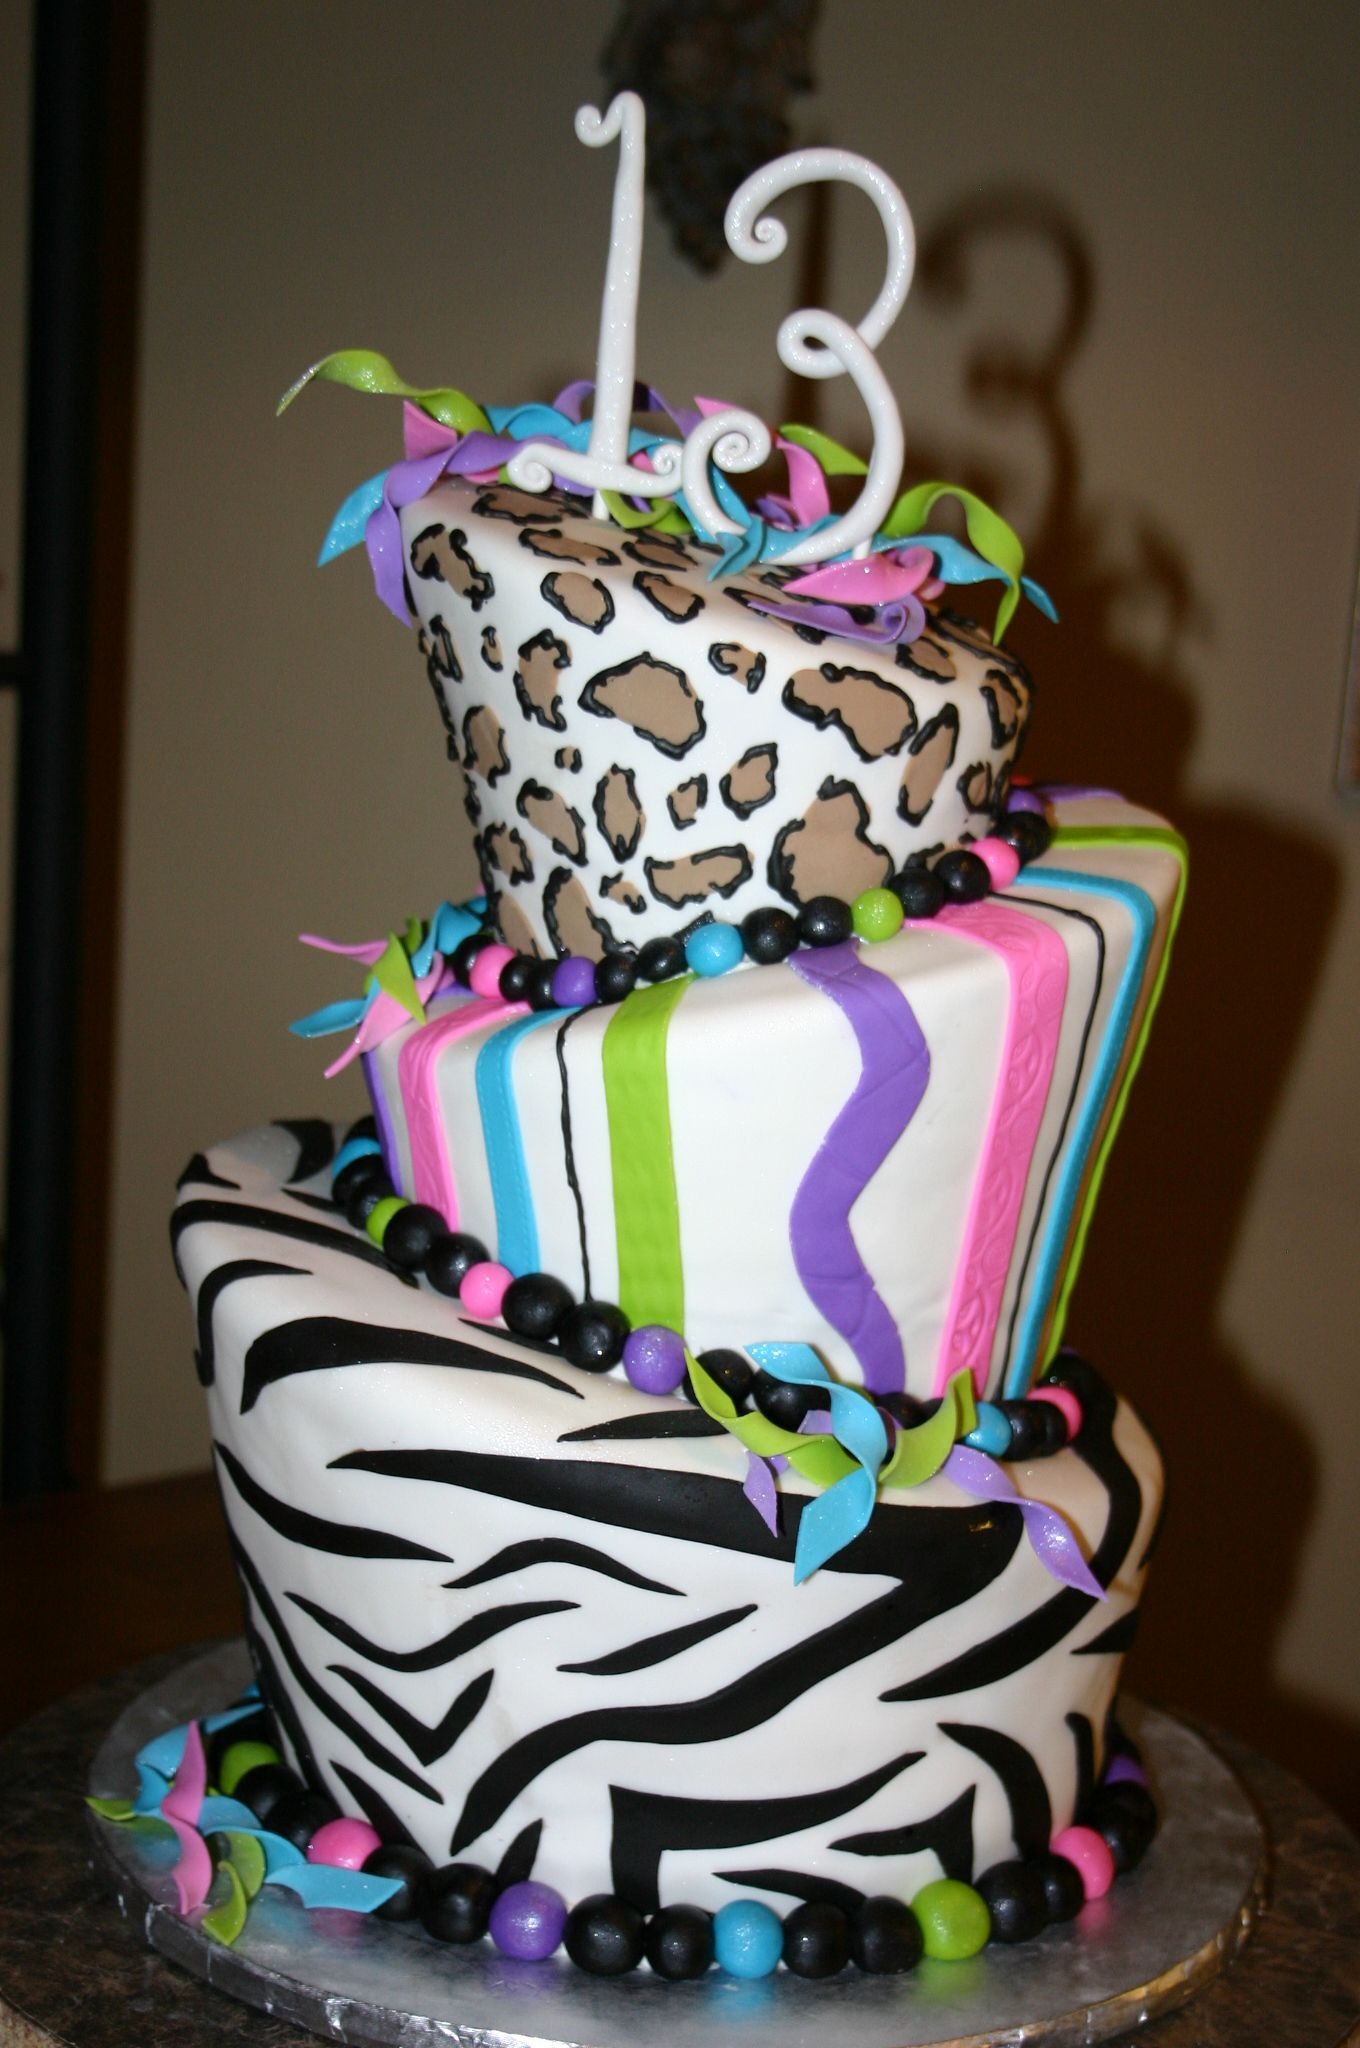 """I WANT THIS FOR JO""""s 10 th BDay This Year!!    14. BIRTHDAY IDEAS: when me and my friend wanted to share a super-awsome 13 birthday party, we both wanted this kind of cake but with 4 layers one zebra, one cheetah, one green, and one blue! with pink 13. and it would have looked awsome!!! :) <3"""